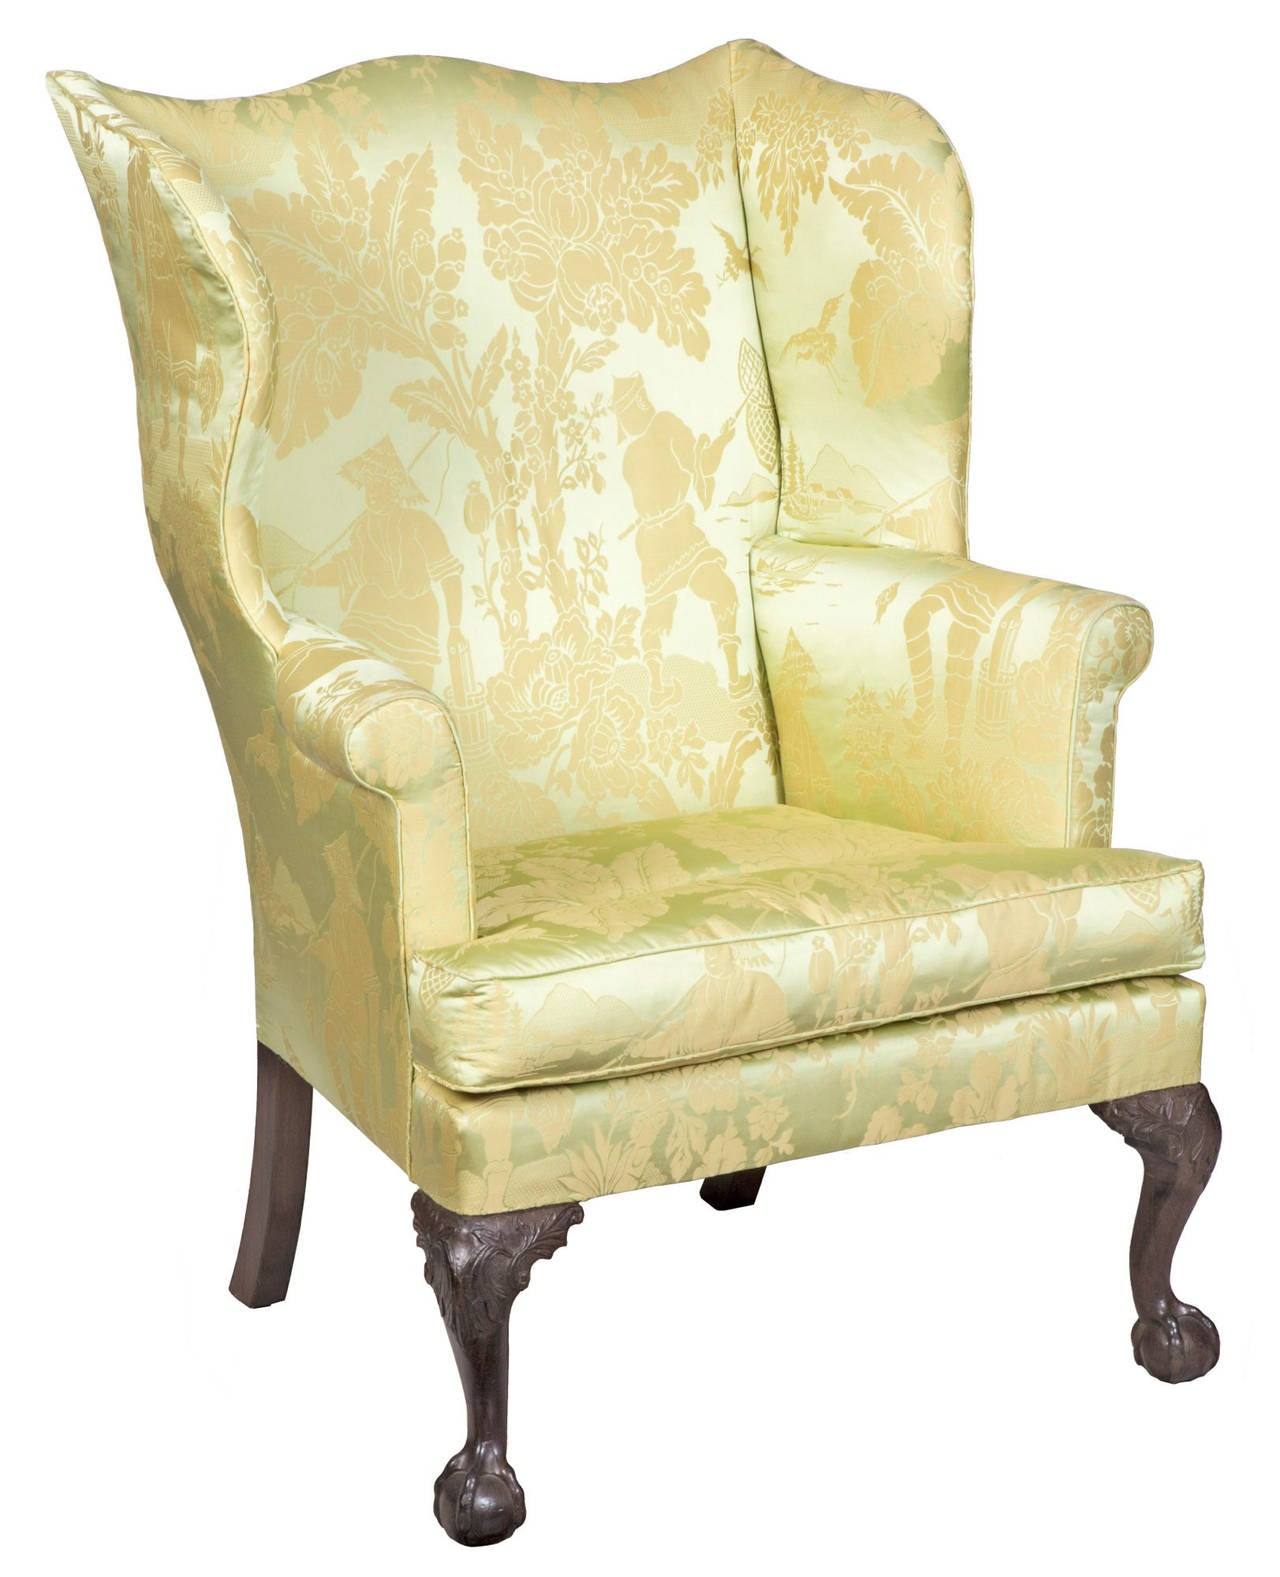 Chair Feet Chippendale Wing Chair On Carved Legs With Claw And Ball